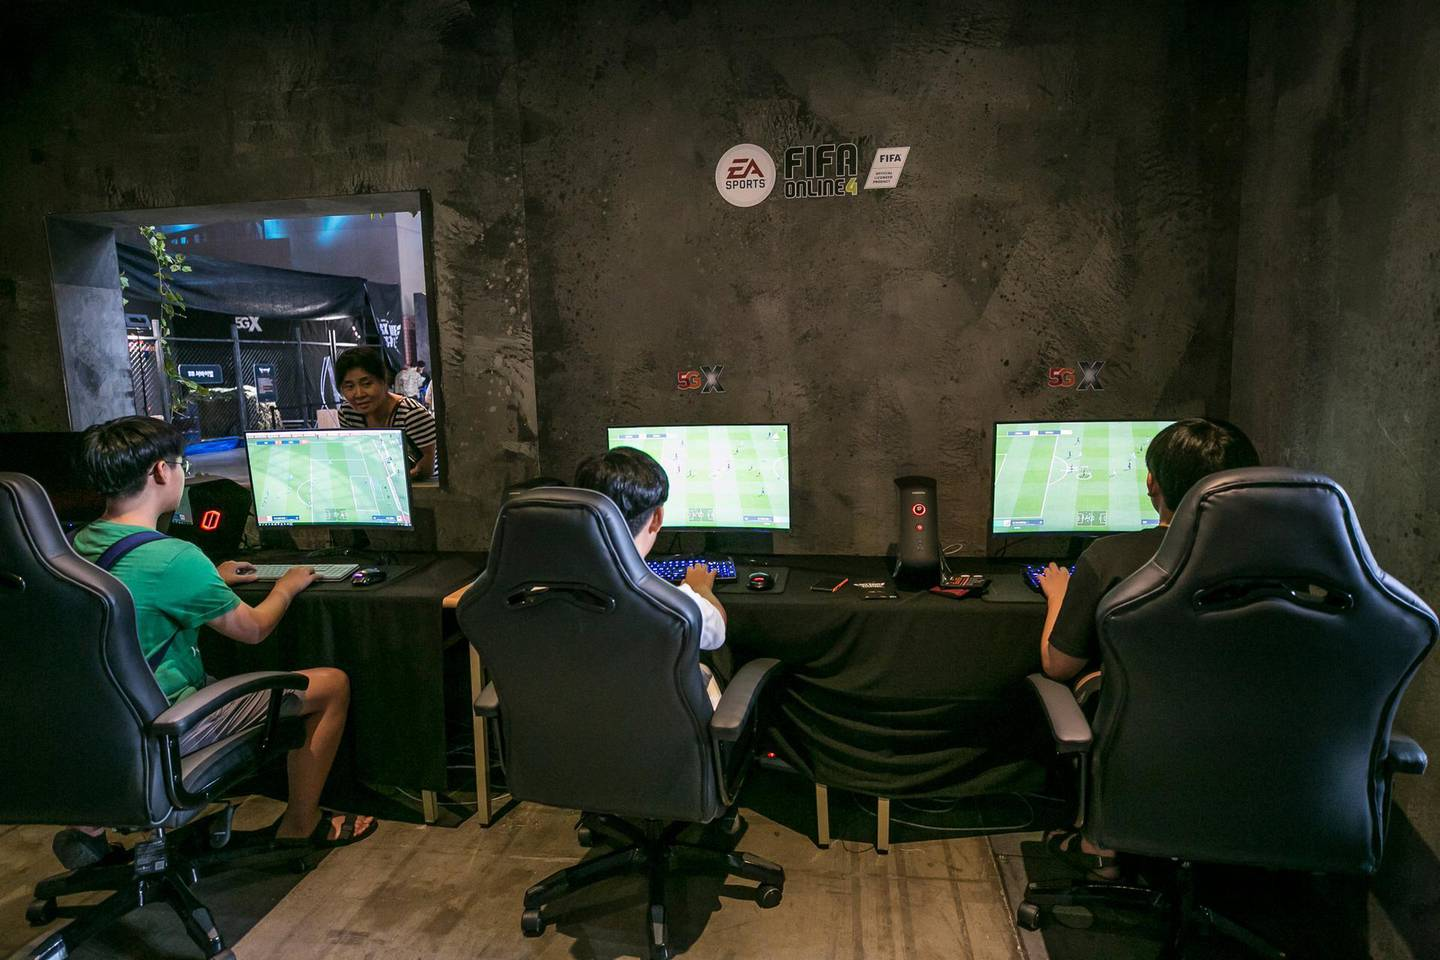 Gamers play the FIFA Online 4 game, developed by Electronic Arts Inc. (EA), during SK Telecom Co.'s 5GX Game Festival in Goyang, South Korea, on Friday, Aug. 10, 2018. Professional video gaming began in South Korea more than a decade ago, and has given rise to leagues that now pack stadiums and draw hundreds of thousands of eyeballs toTwitch livestreamsfor tournaments. Photographer: Jean Chung/Bloomberg